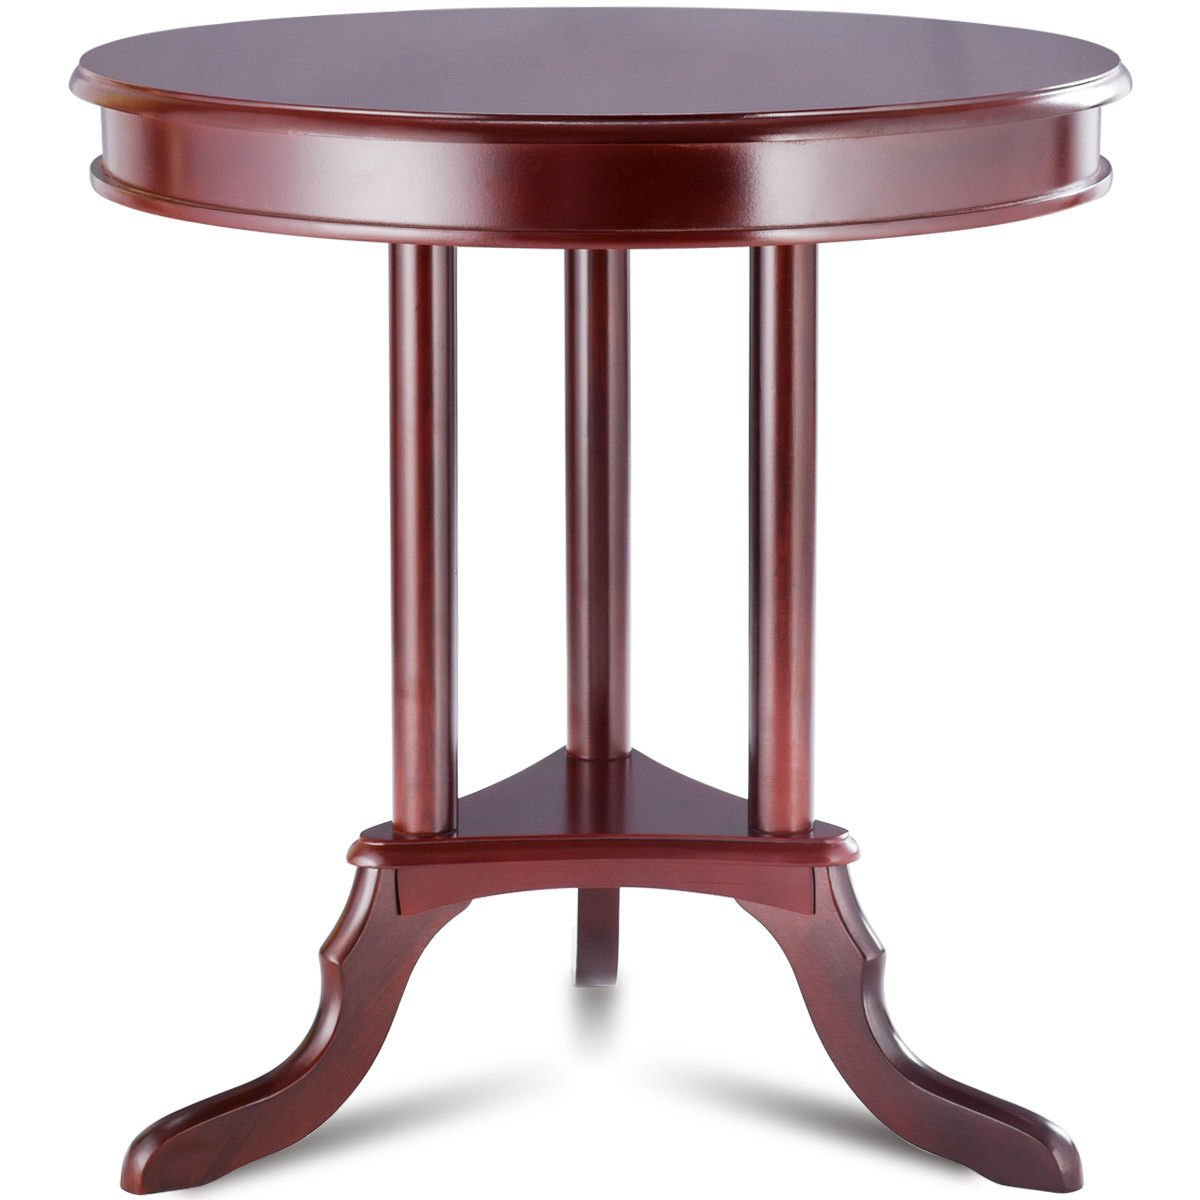 giantex round accent table end side home with drawer furnishing shelf slanted legs kitchen dining three legged vacuum best drum throne under wood and acrylic coffee blue ginger